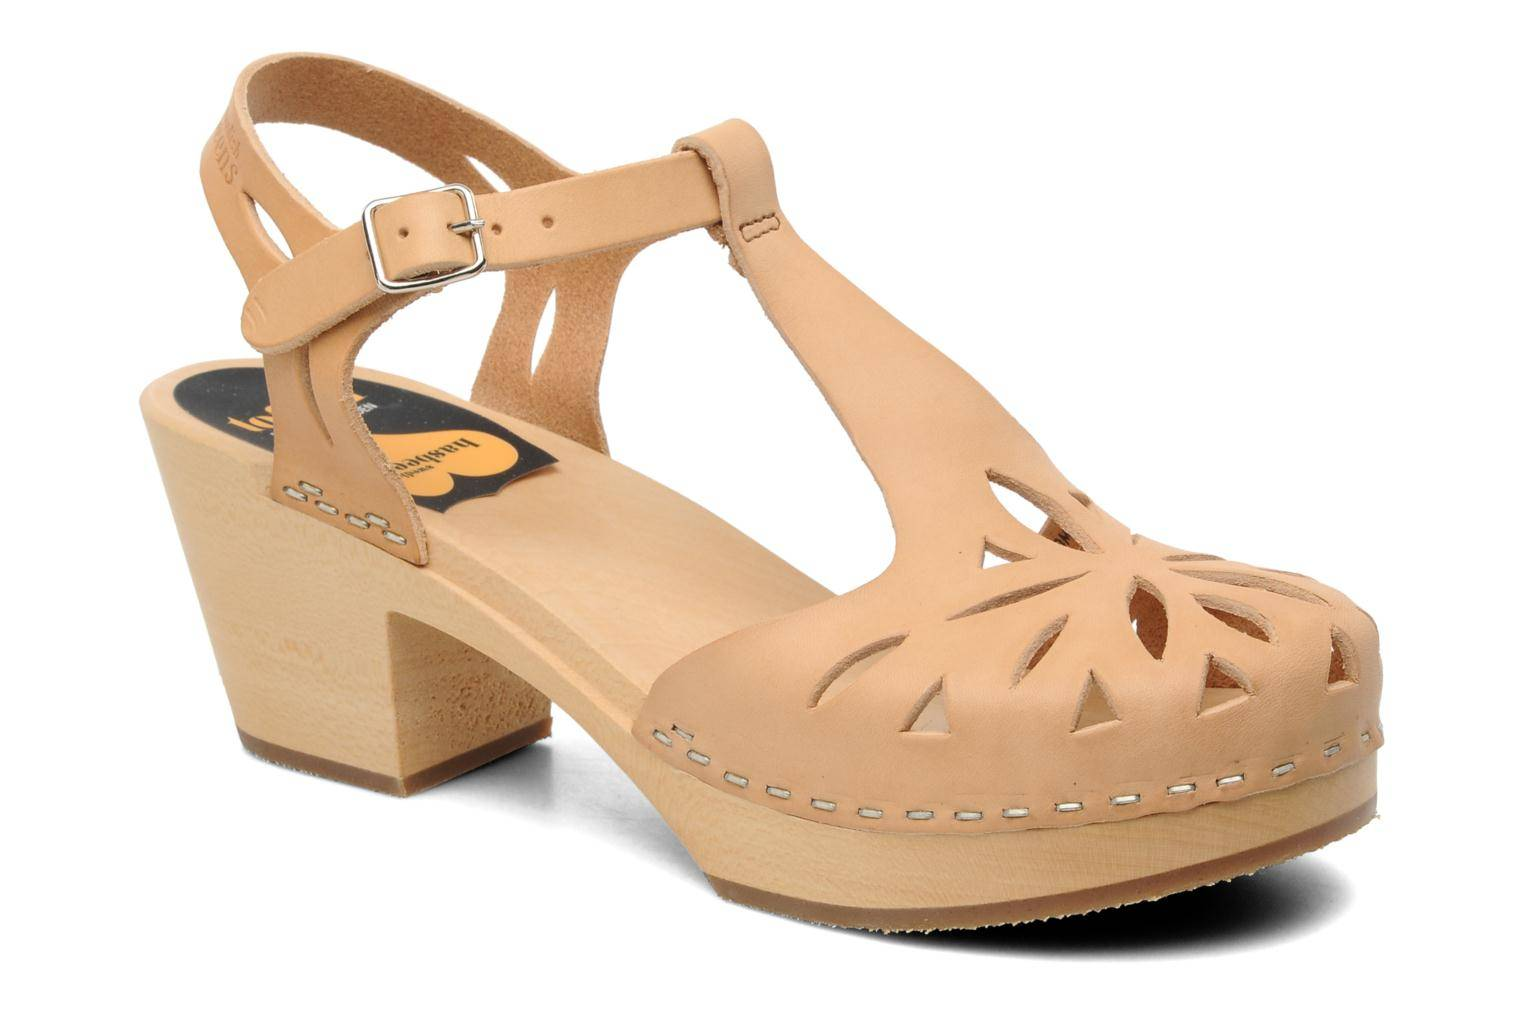 Swedish Hasbeens - Lacy Sandal by  - Sandaalit Naisille  / Beige